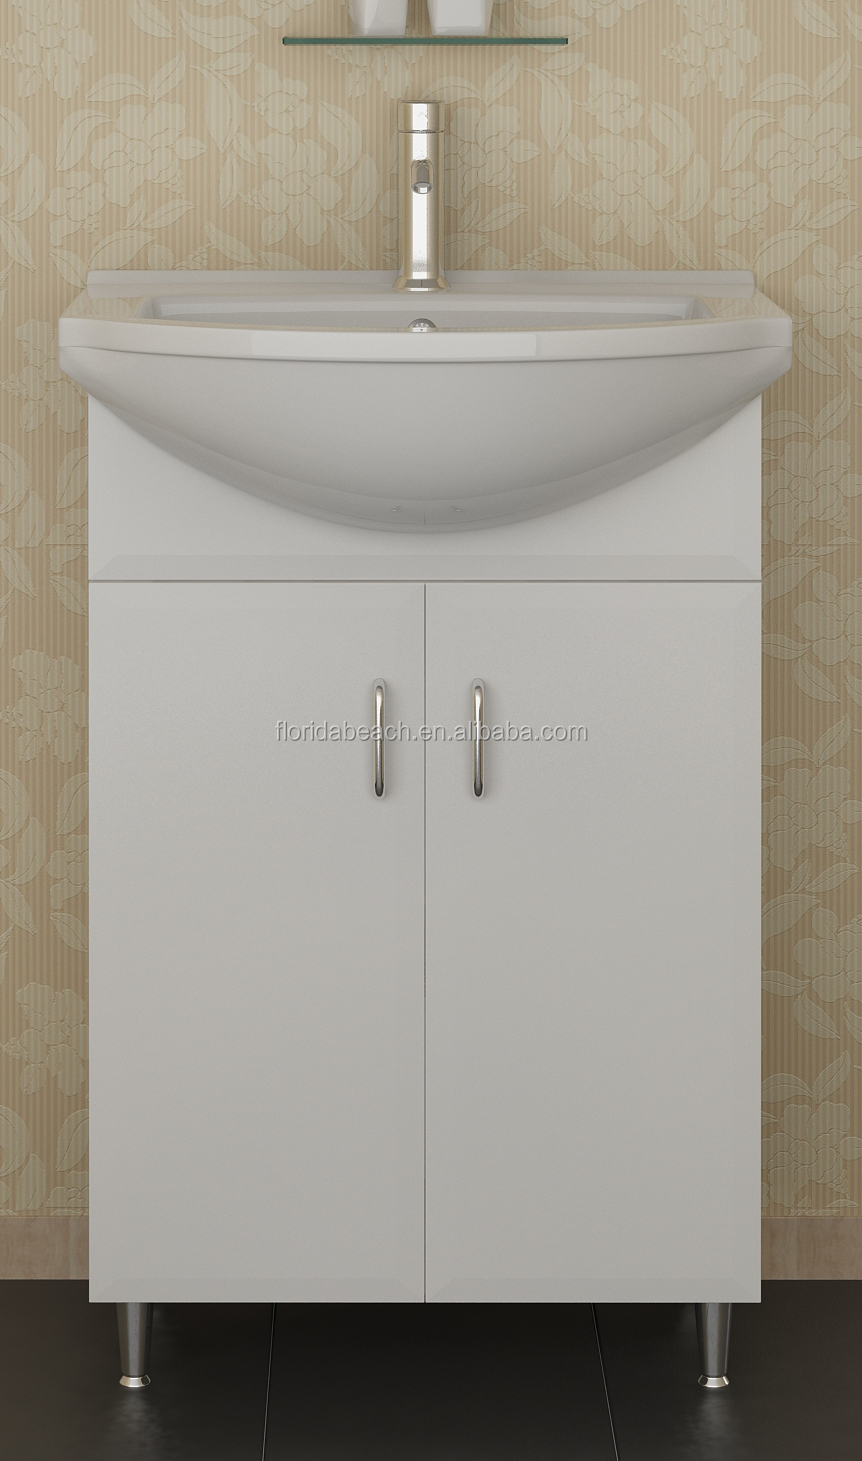 bathroom cabinet high glossy white bathroom cabinet product on alibaba